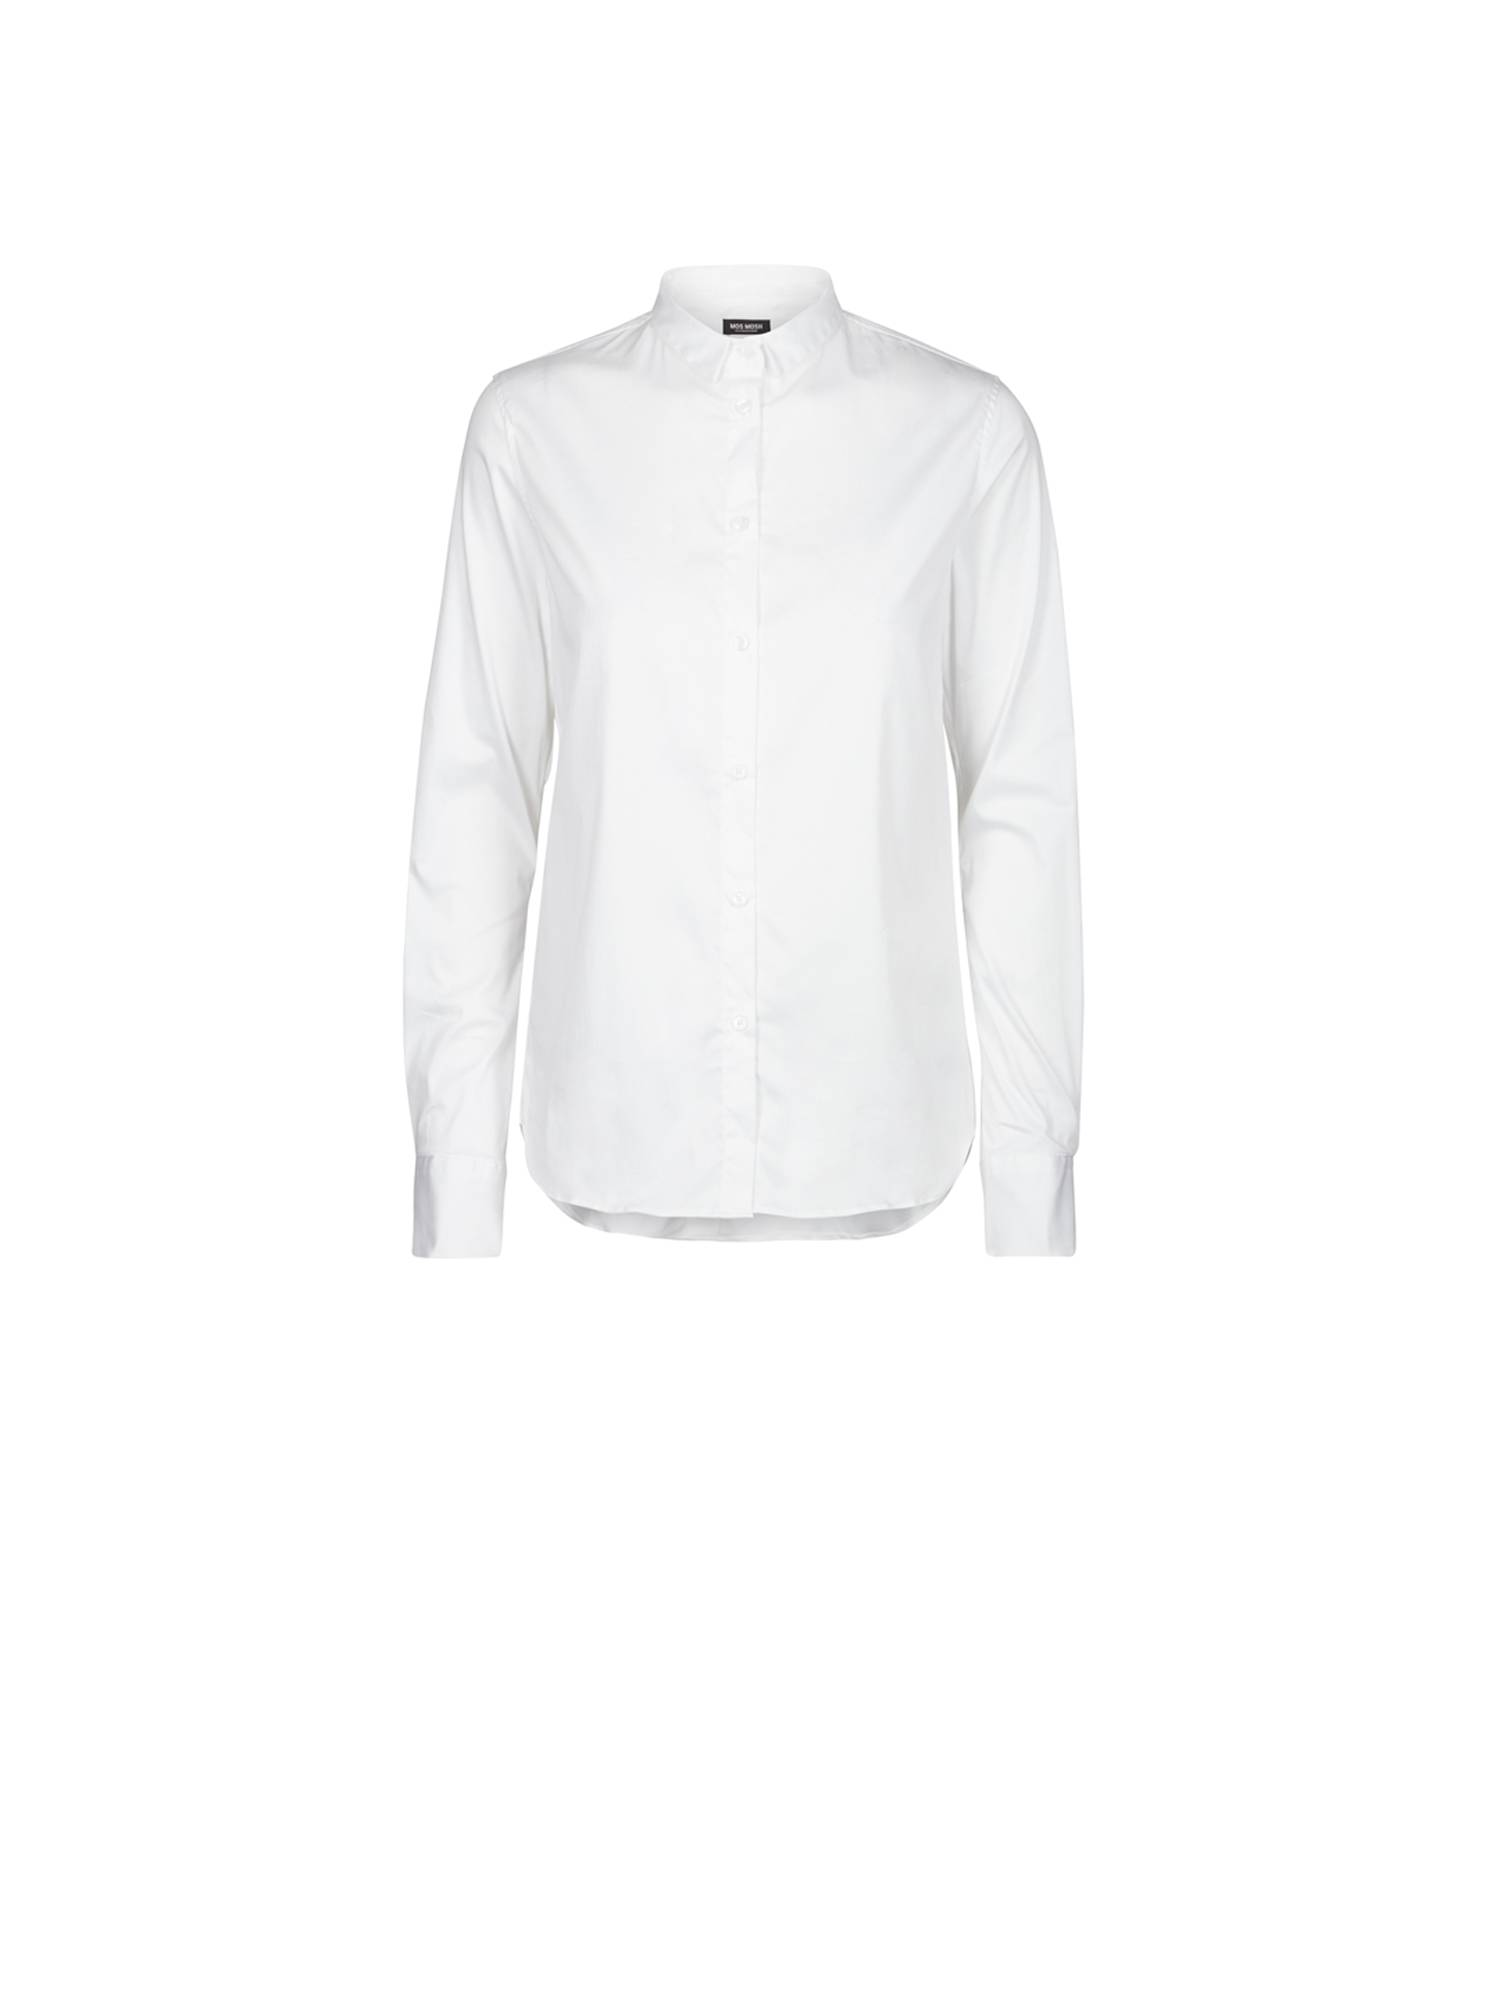 Mos Mosh 115260 Tilda Shirt 101 White | Pico Women Fashion & More